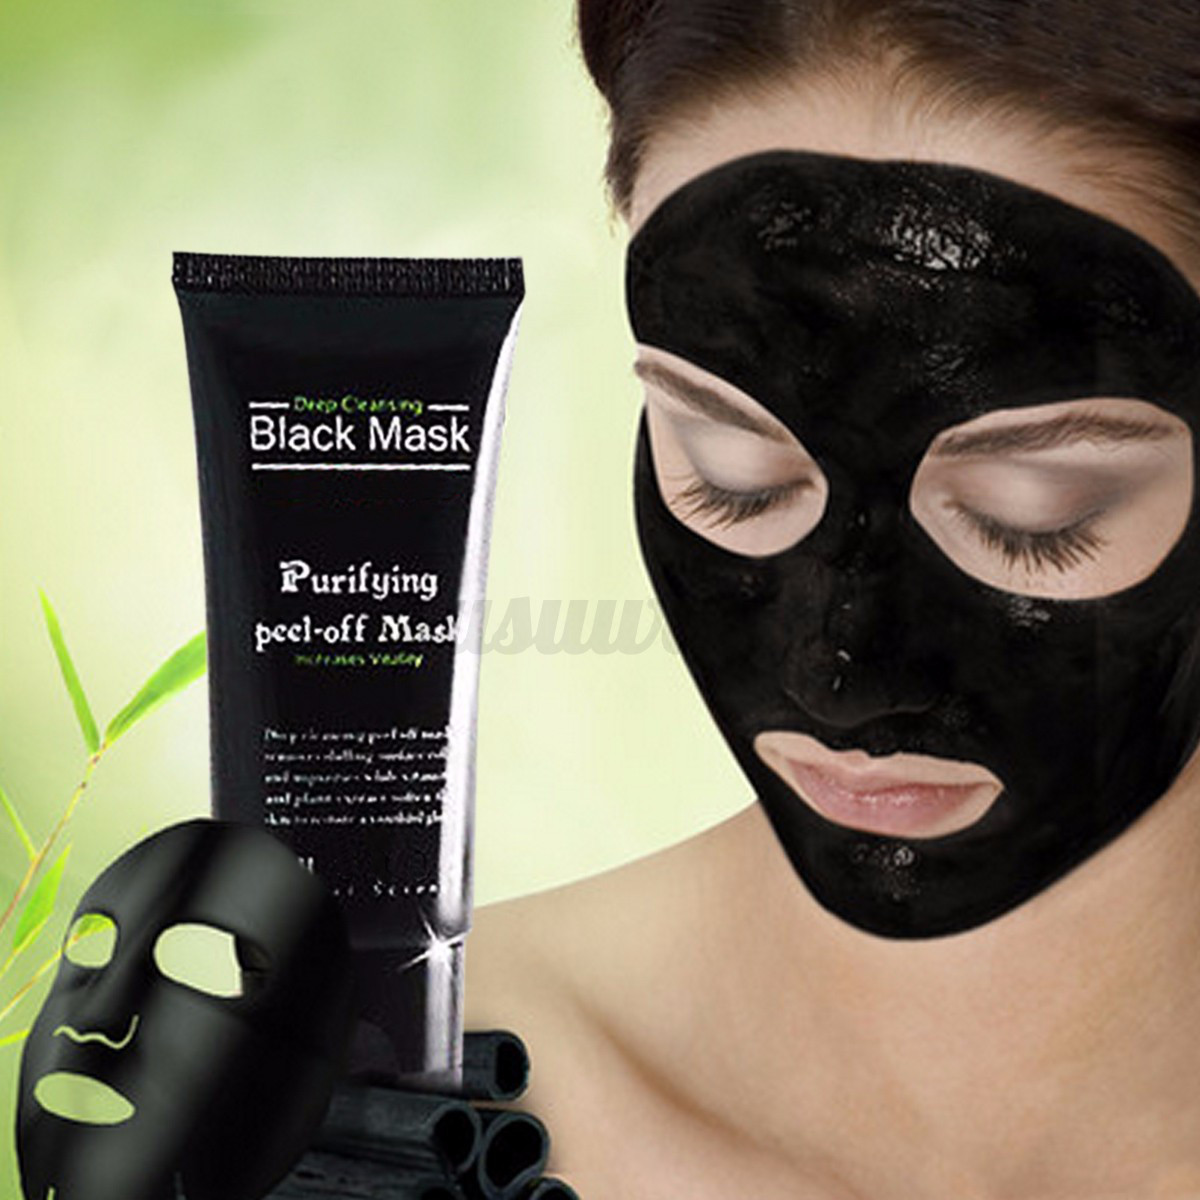 charbon masque boue anti acn point noir black mask peau soin nez visage brosse ebay. Black Bedroom Furniture Sets. Home Design Ideas